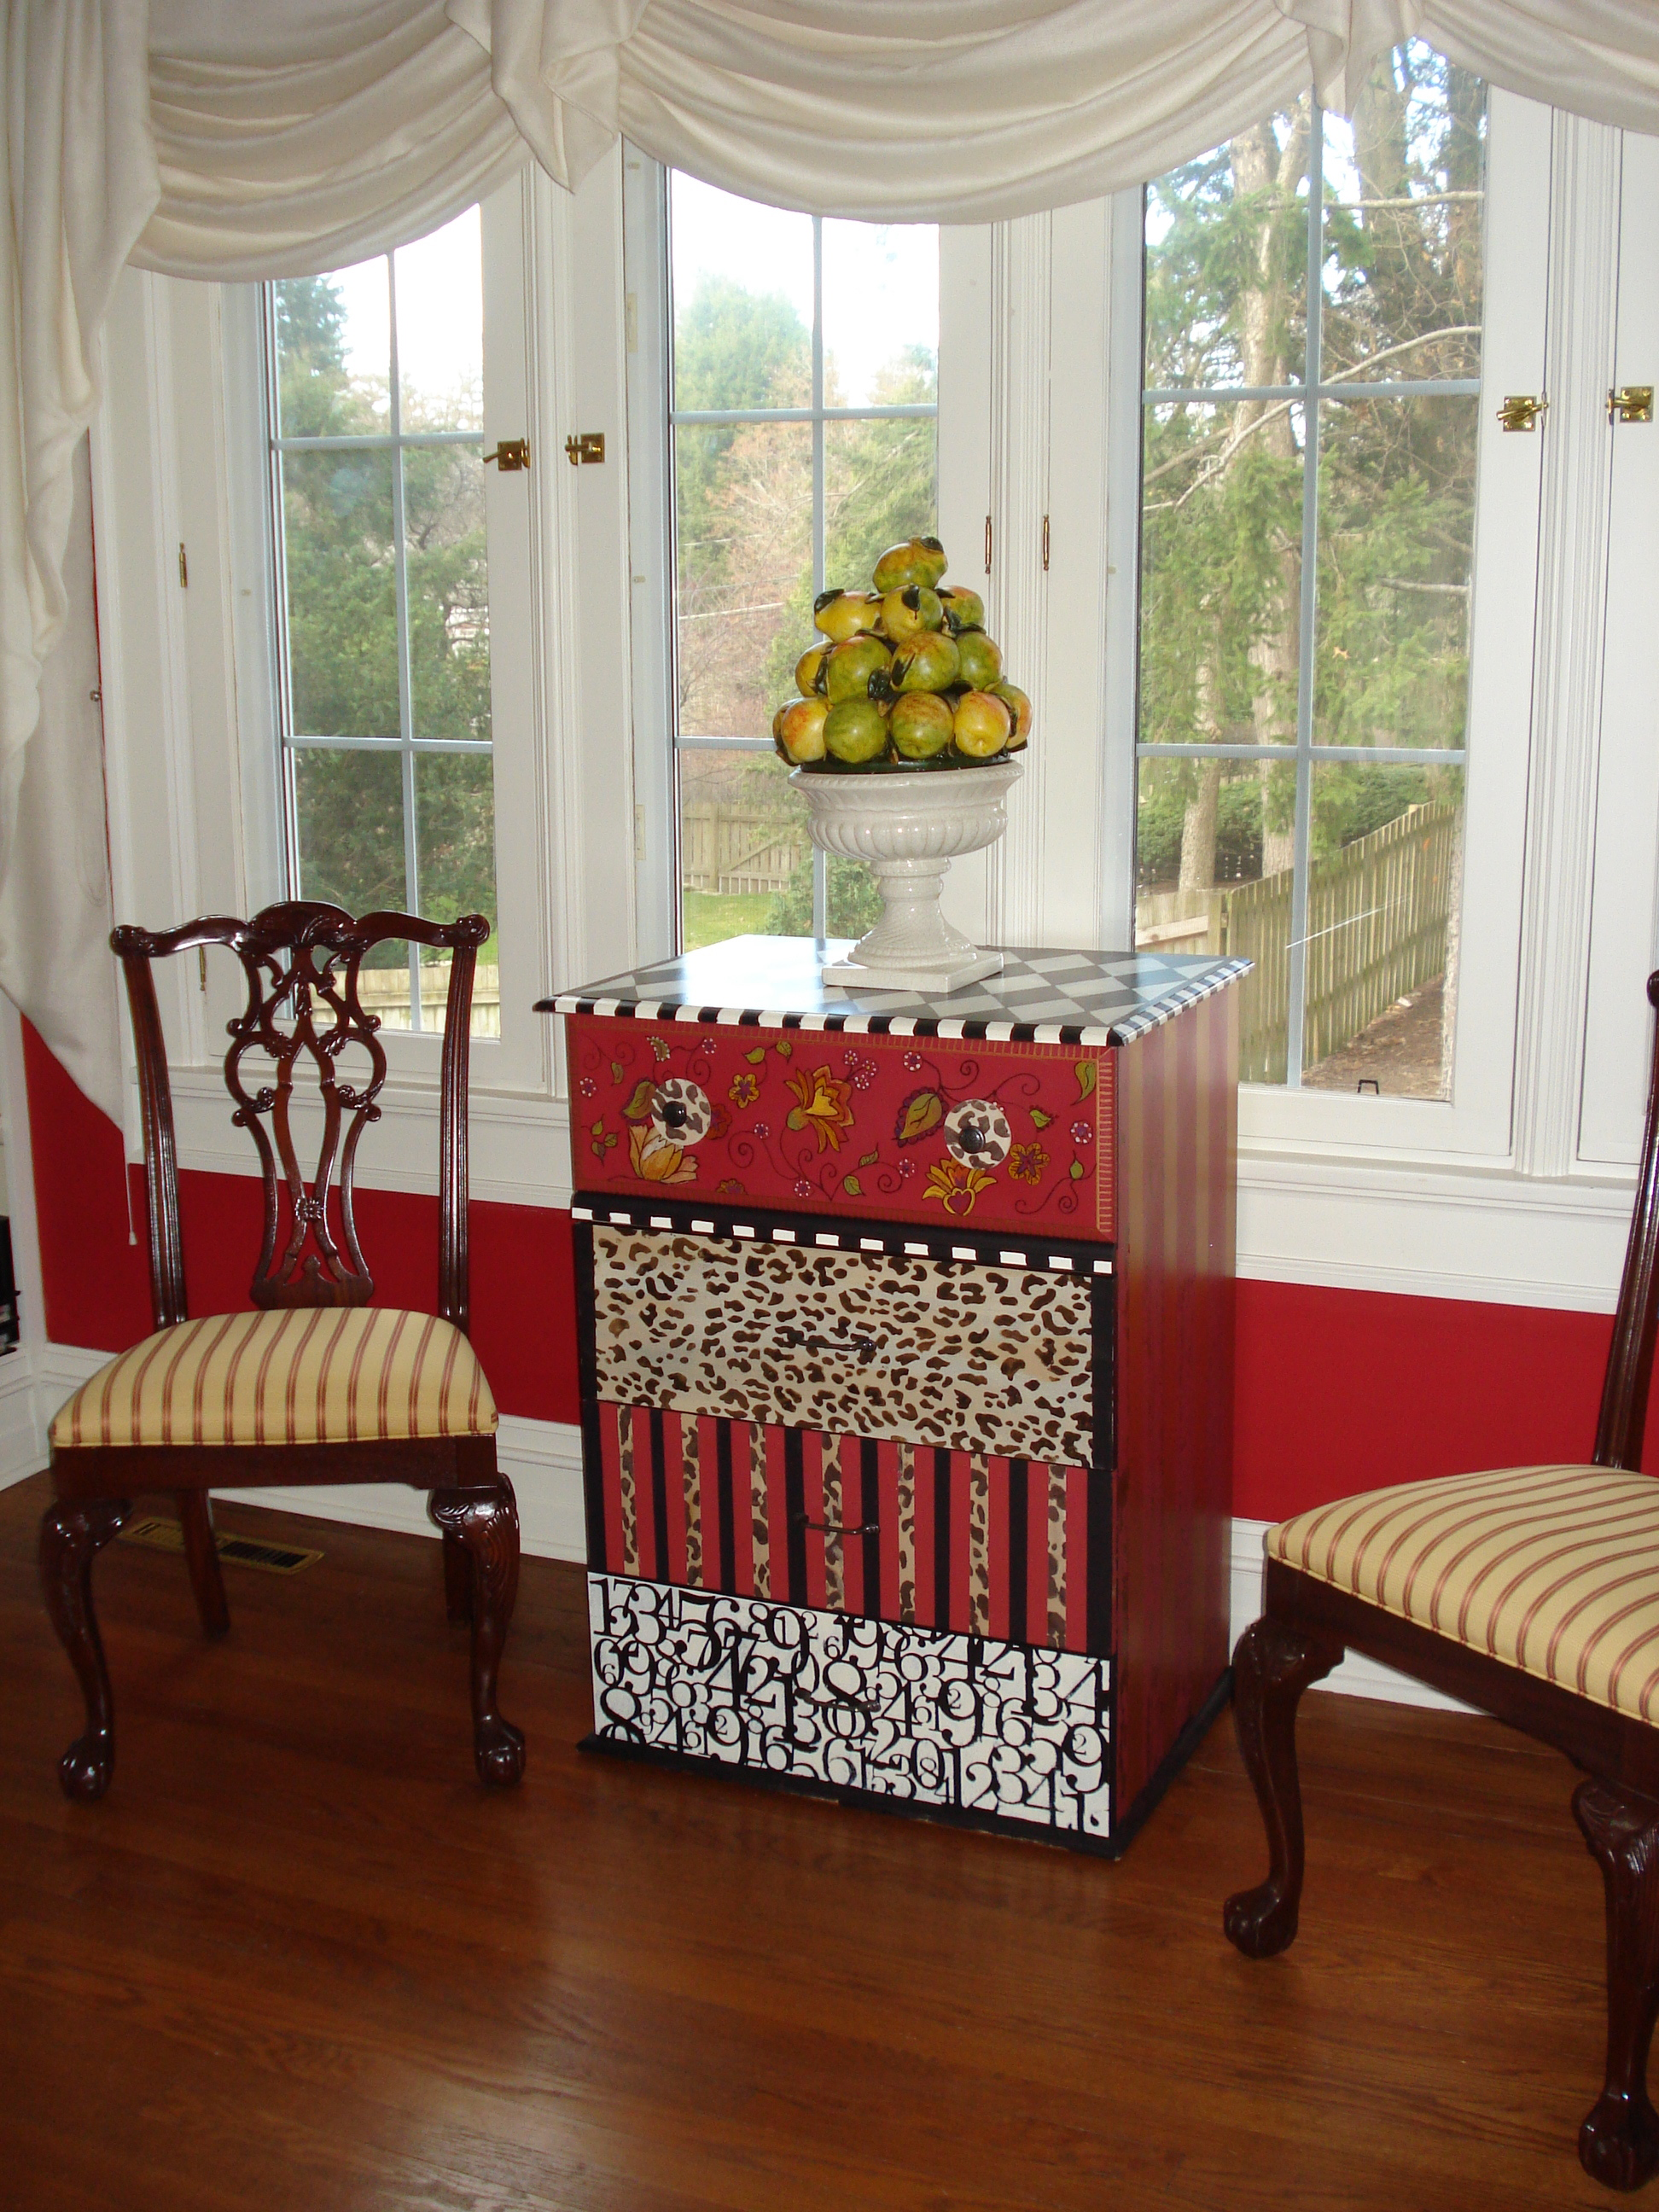 Funky Hand Painted Furniture in a Traditional Home Becolorful